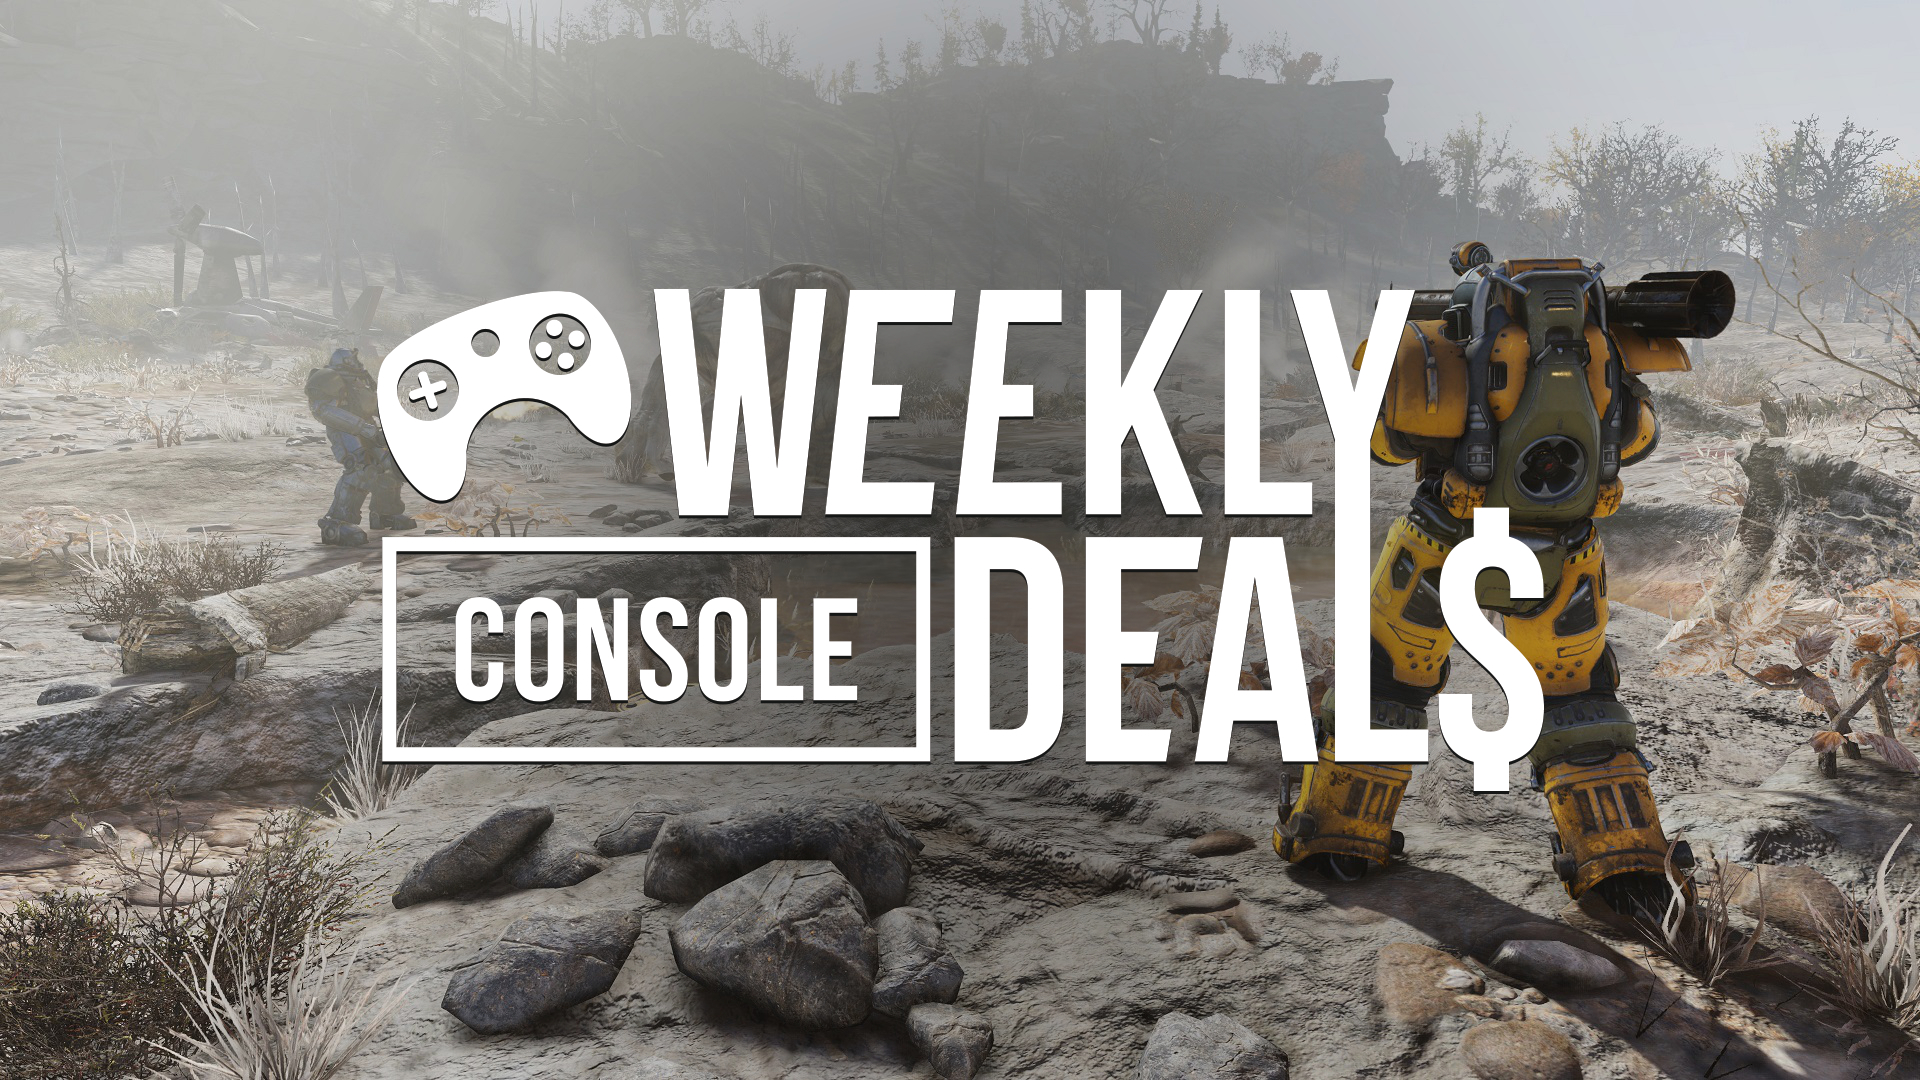 Image of article 'Weekend Console Download Deals for May 15: Free Fallout 76 weekend'